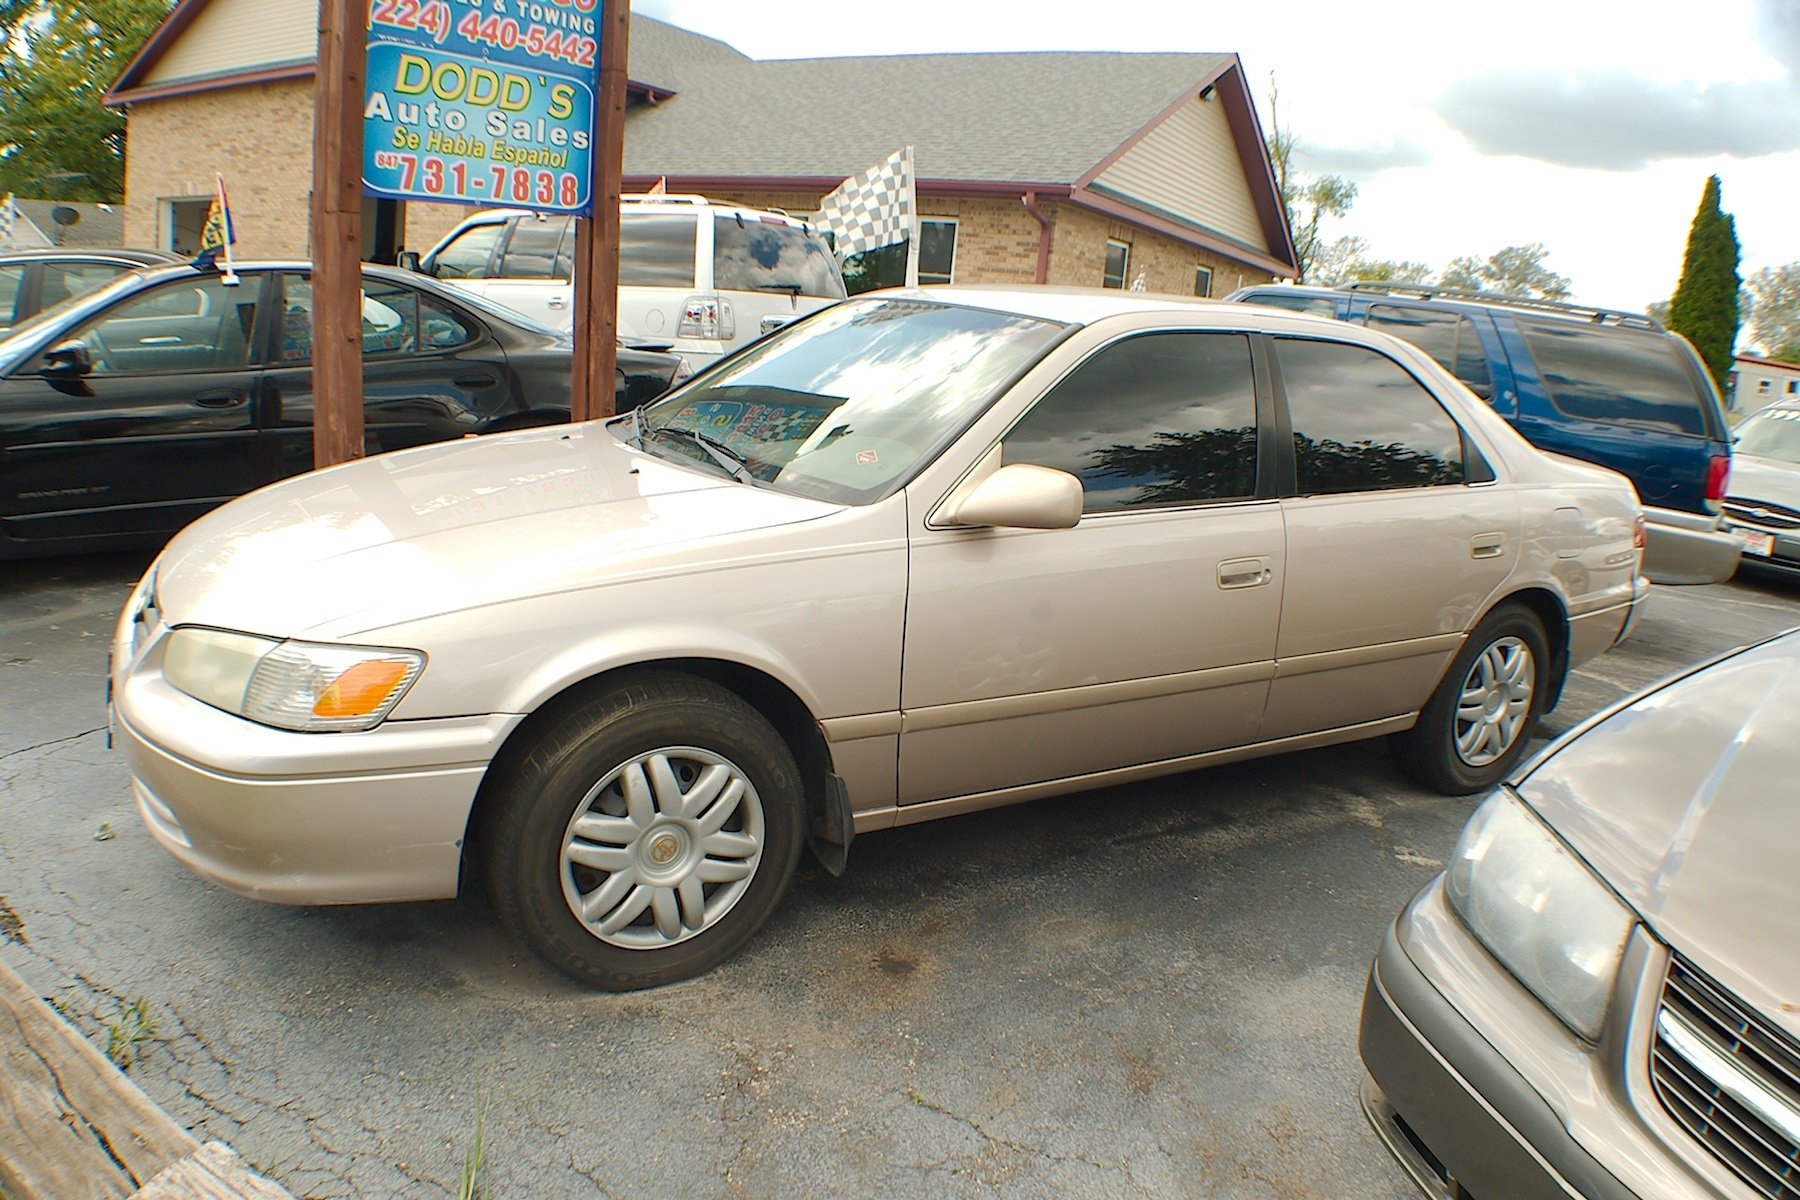 2001 Toyota Camry LE Sand Sedan Used Car Sale Antioch Zion Waukegan Lake County Illinois